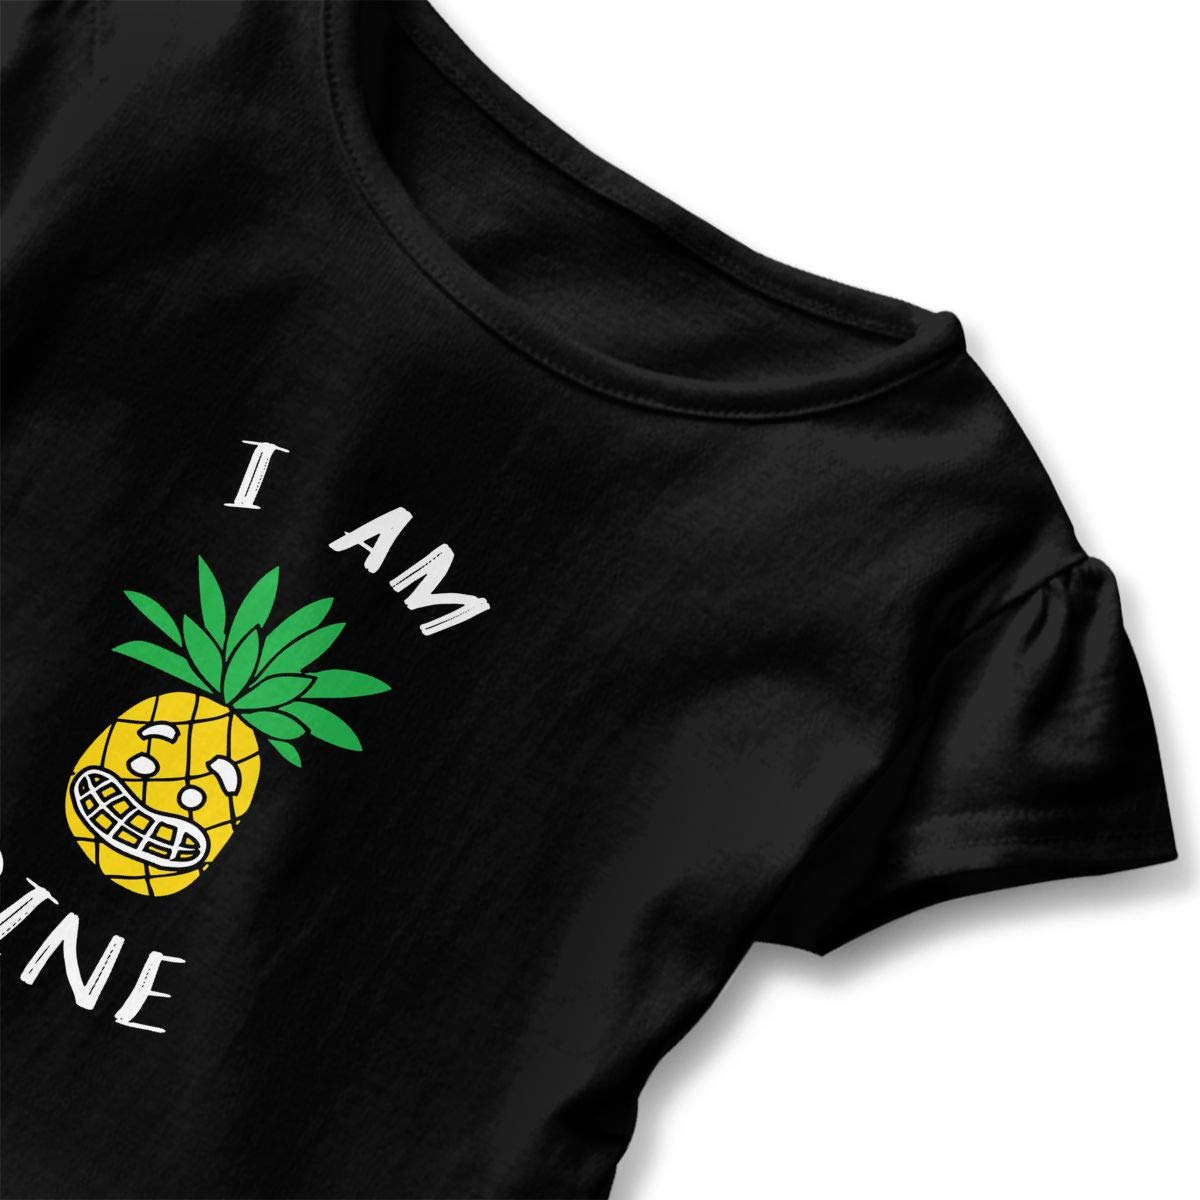 Funny Pineapple Toddler Baby Girls Cotton Ruffle Short Sleeve Top Comfortable T-Shirt 2-6T